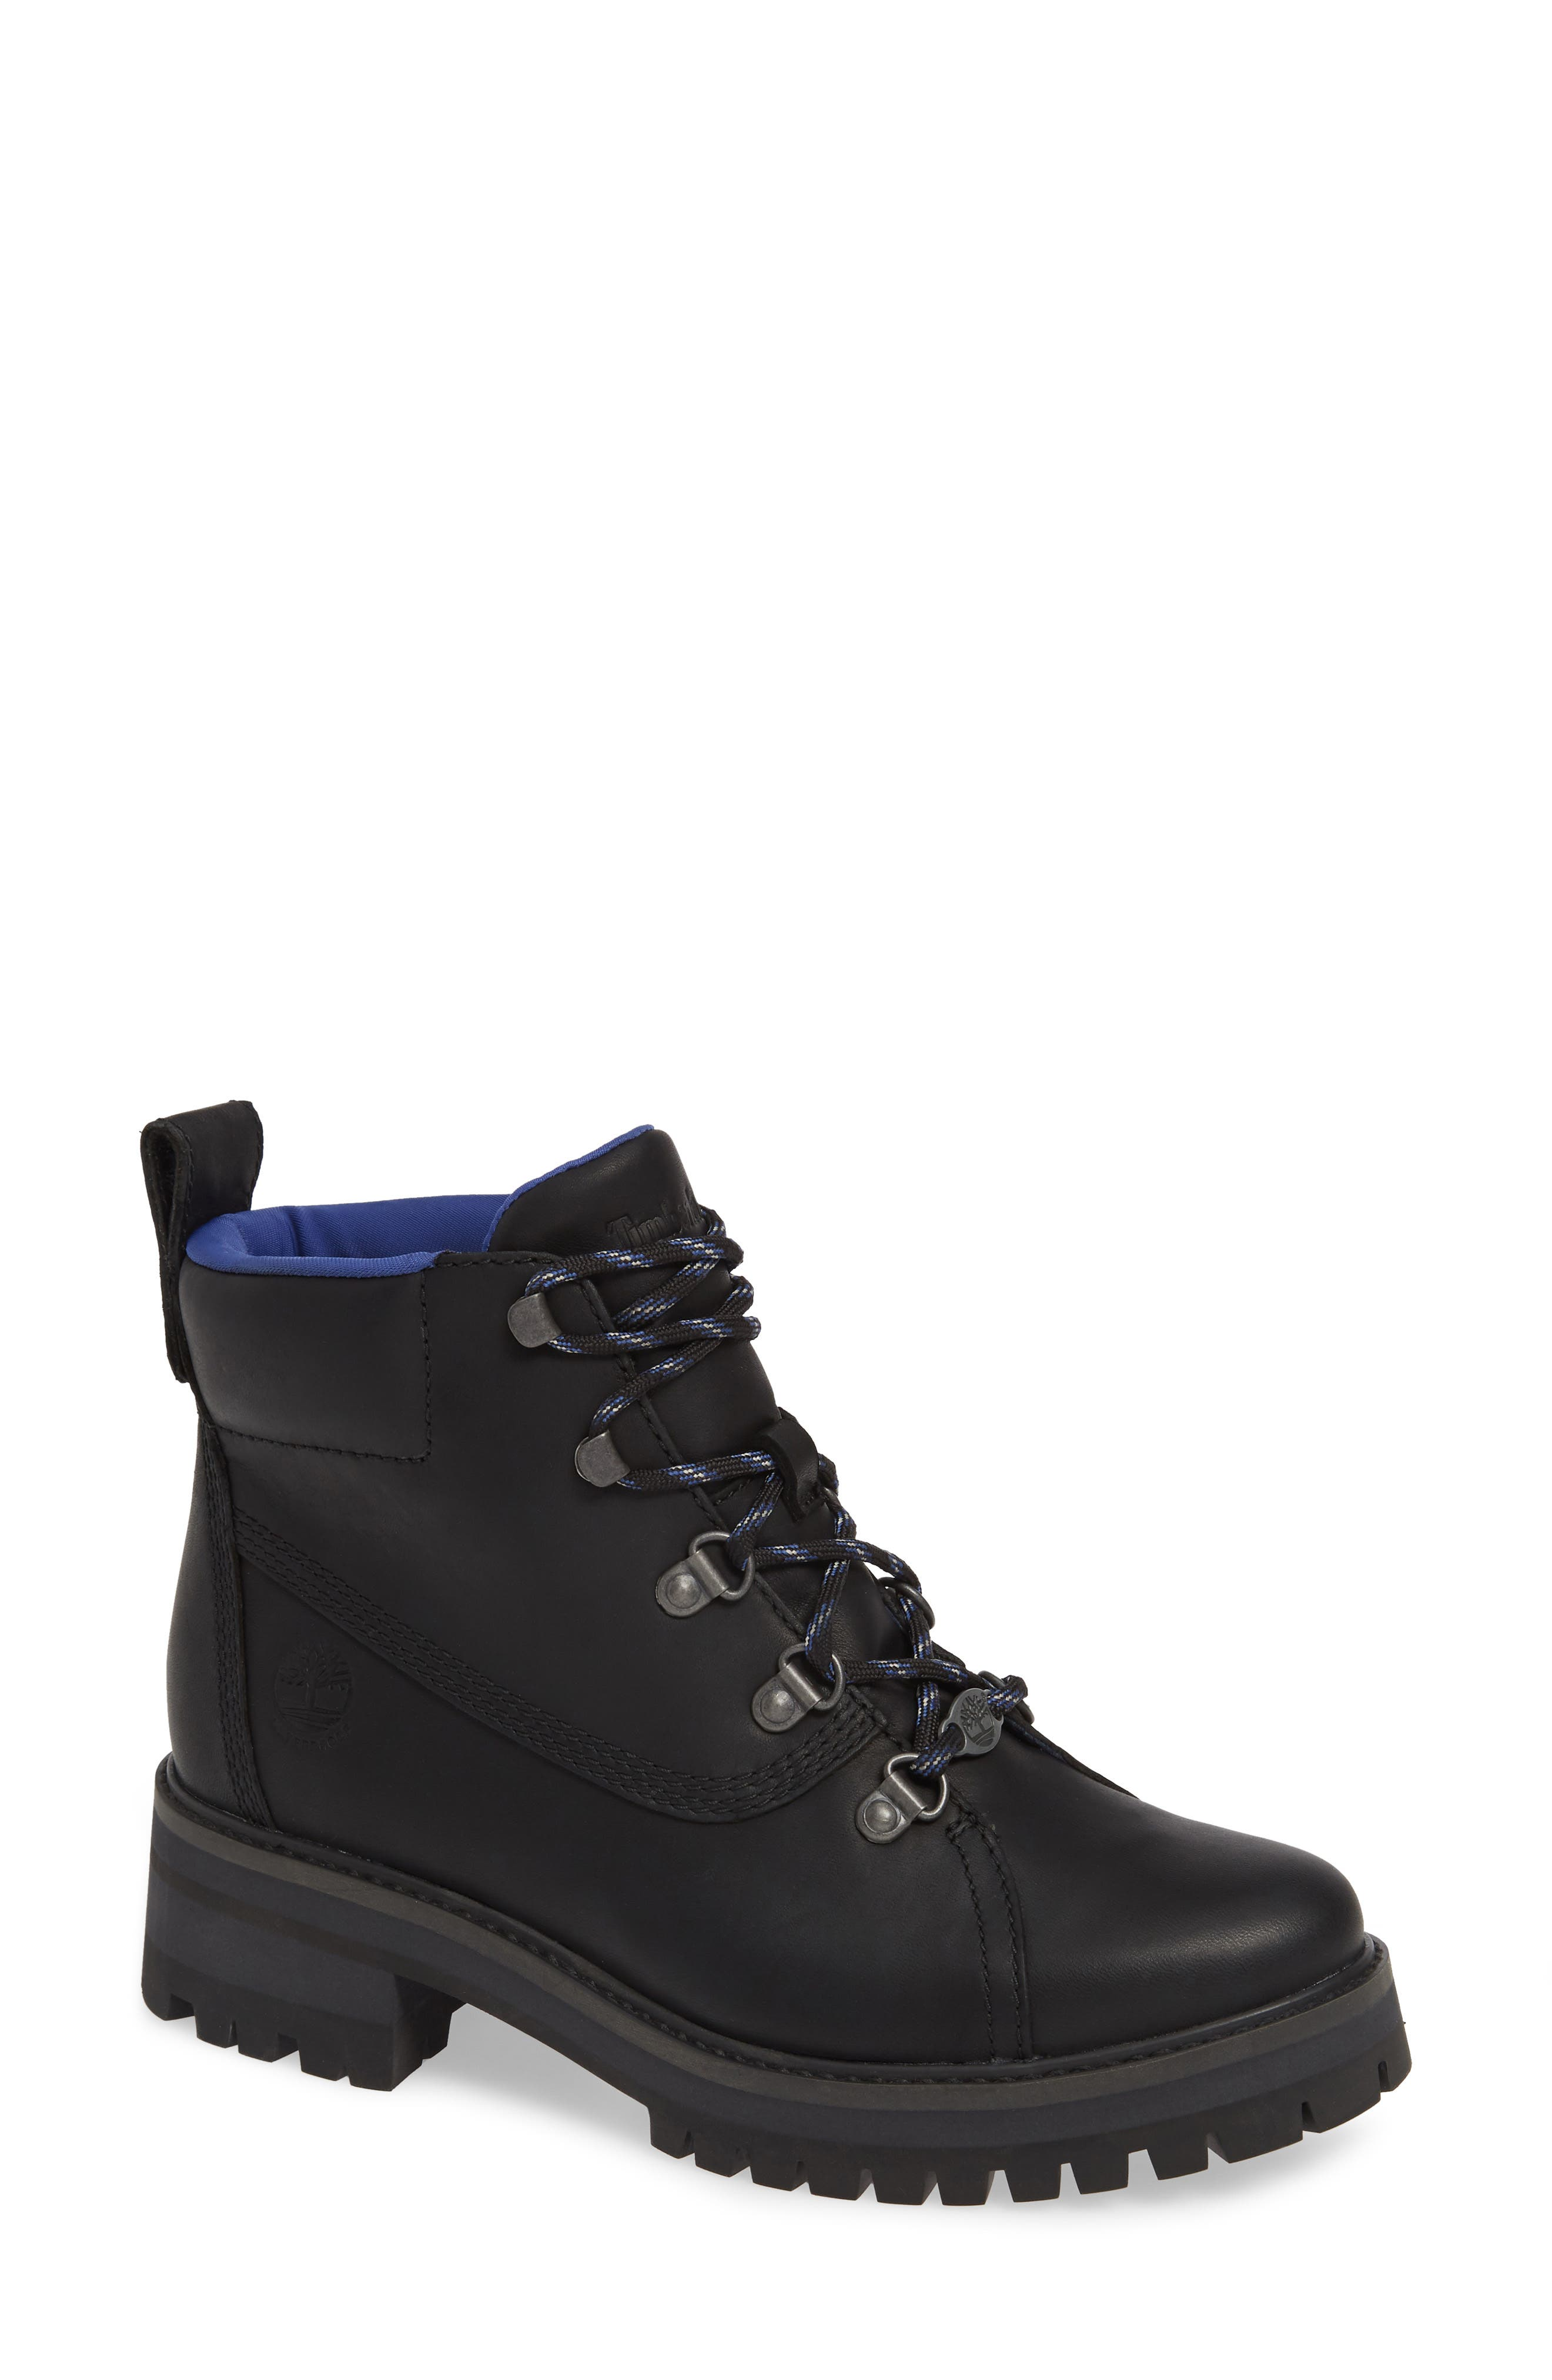 Courmayeur Valley Waterproof Hiking Boot, Main, color, BLACK NUBUCK BLACK OUT LEATHER